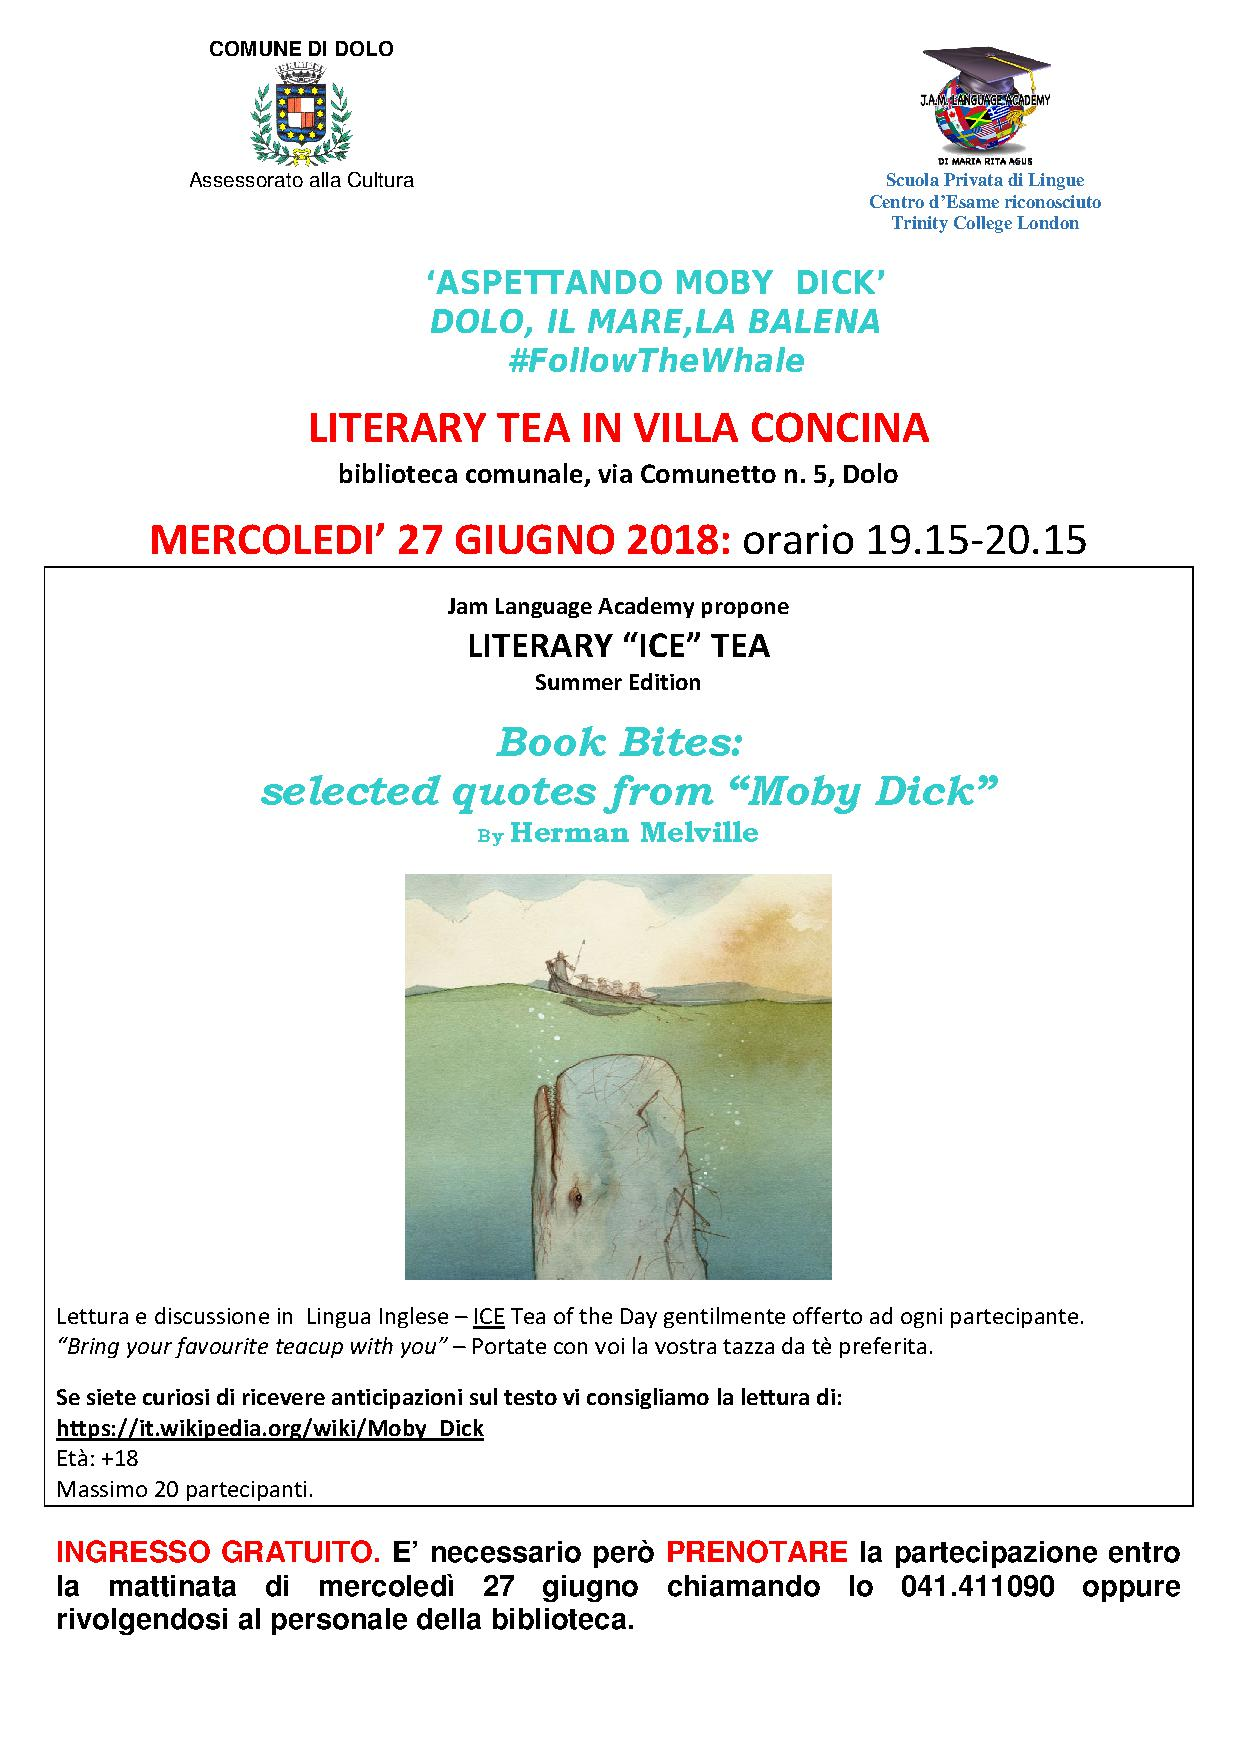 'LITERARY TEA IN VILLA CONCINA. LETTURE E DISCUSSIONI IN LINGUA INGLESE'